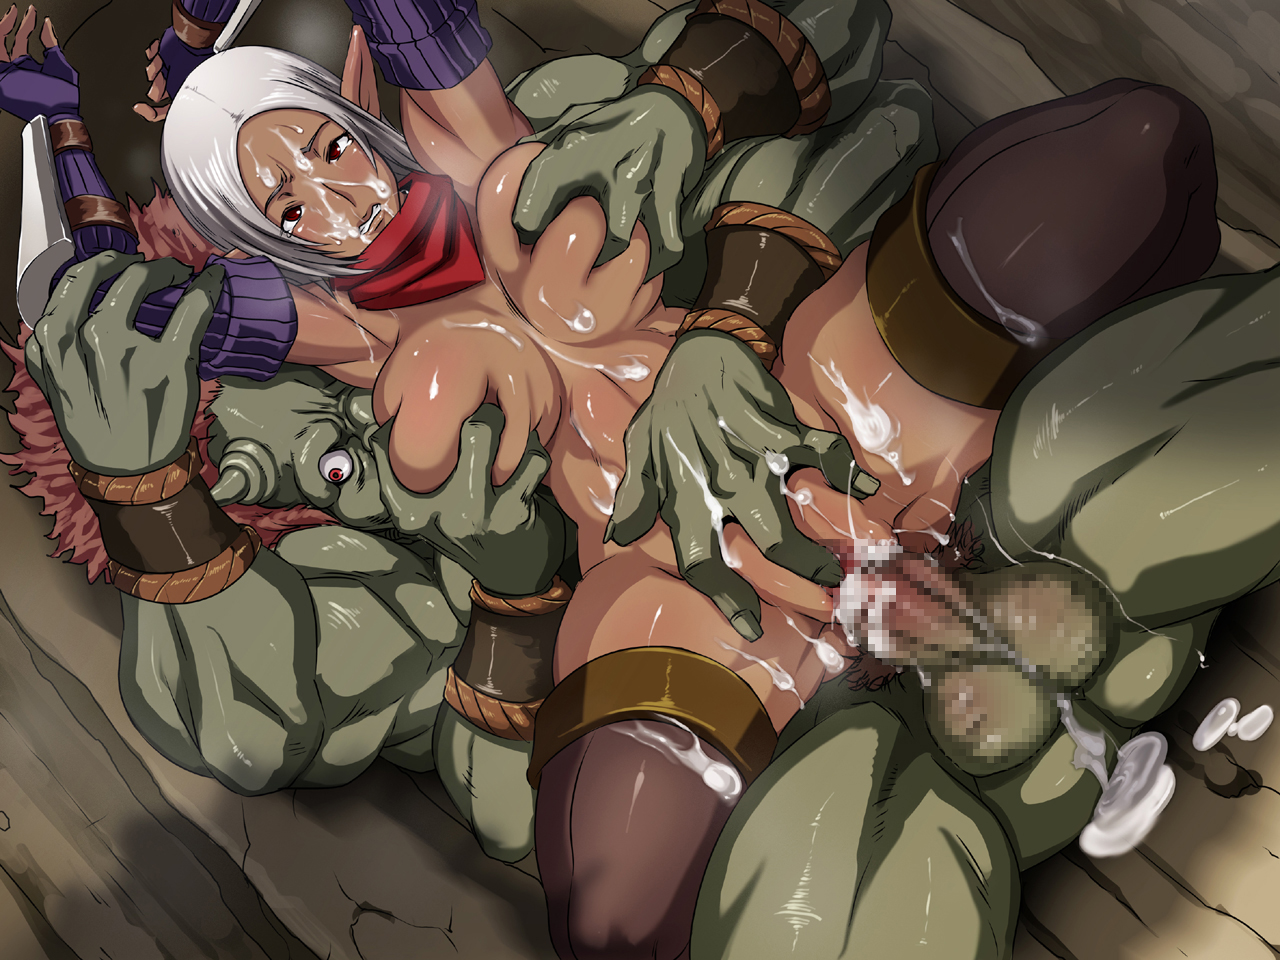 Hot hentai gay porn ogre adult photo